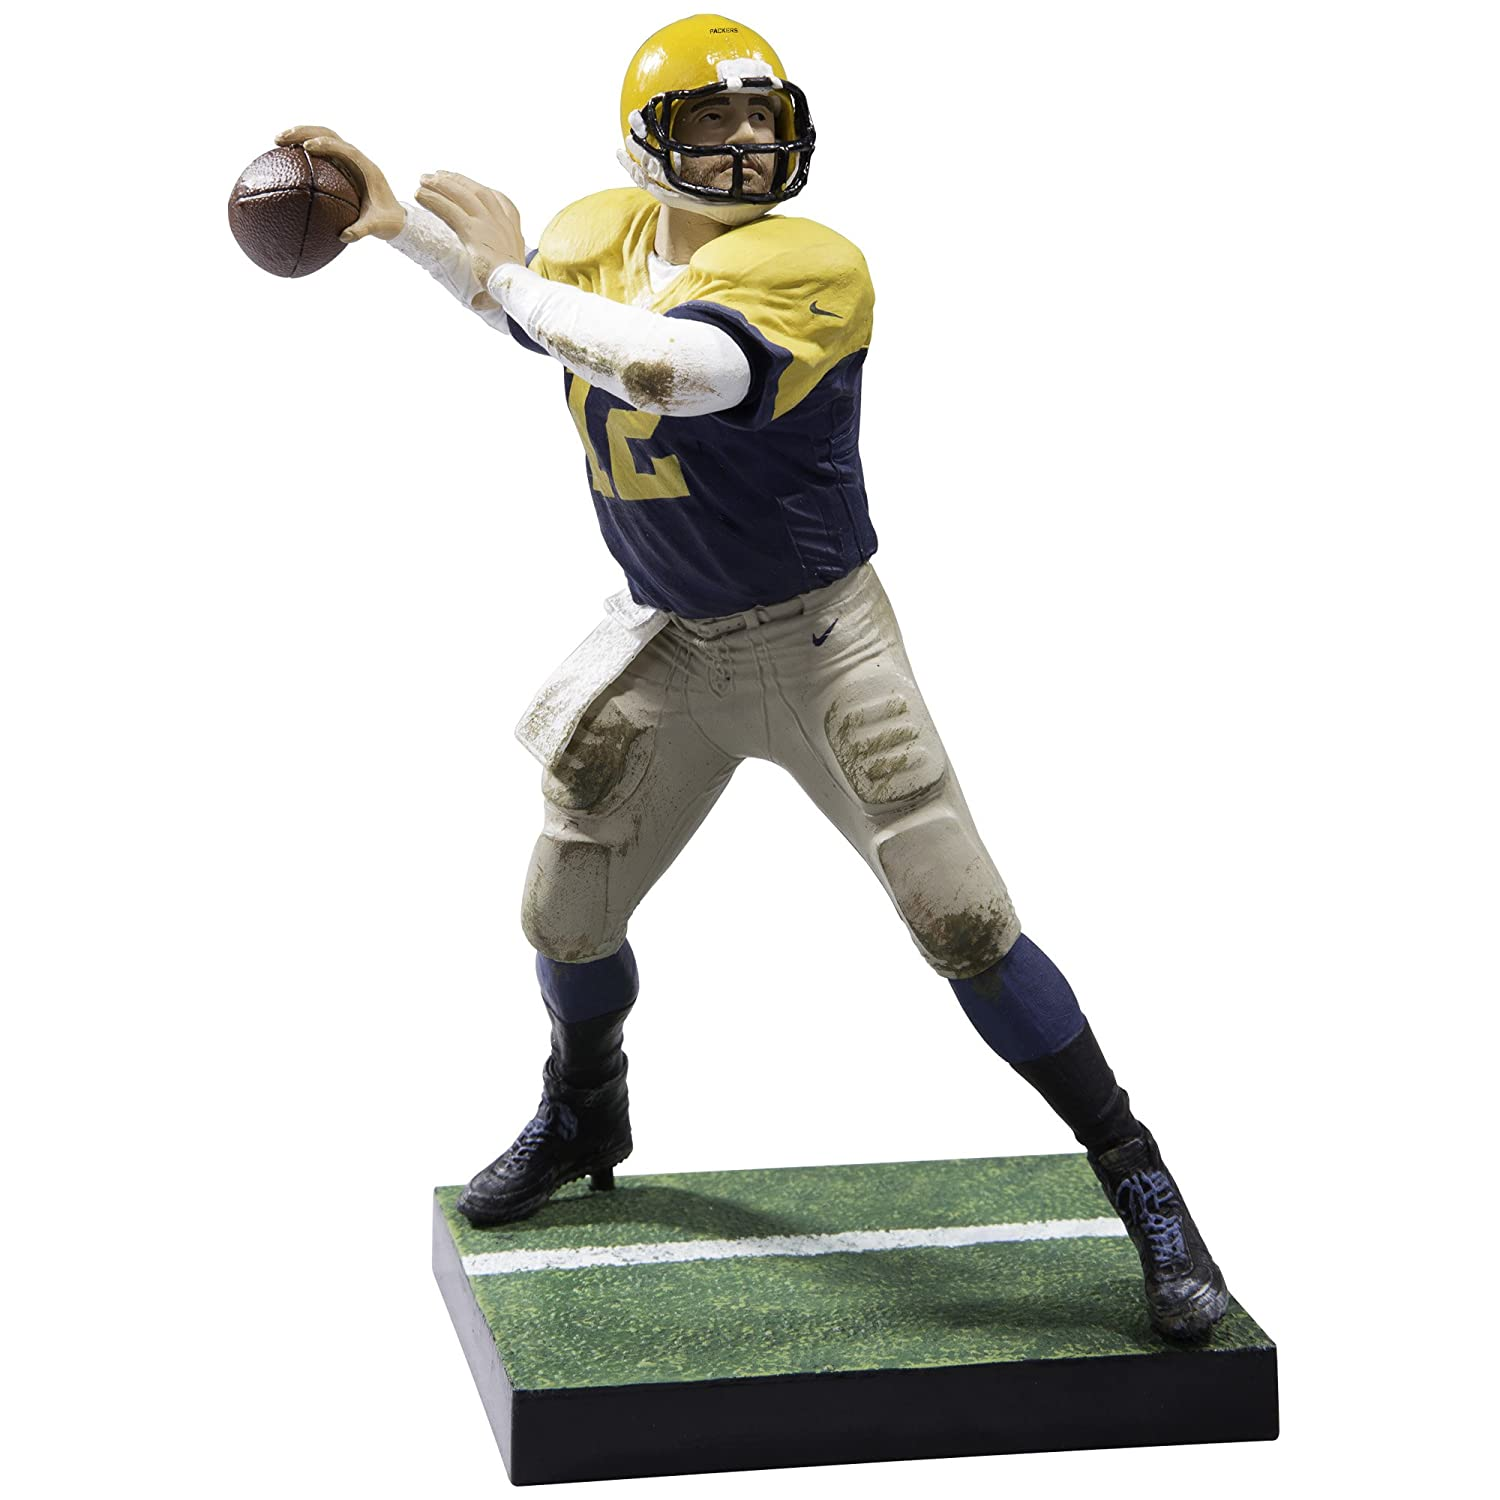 McFarlane NFL Madden 17 Series 2 AARON RODGERS #12 - GREEN BAY PACKERS Figur Mcfarlane Toys 75705-7